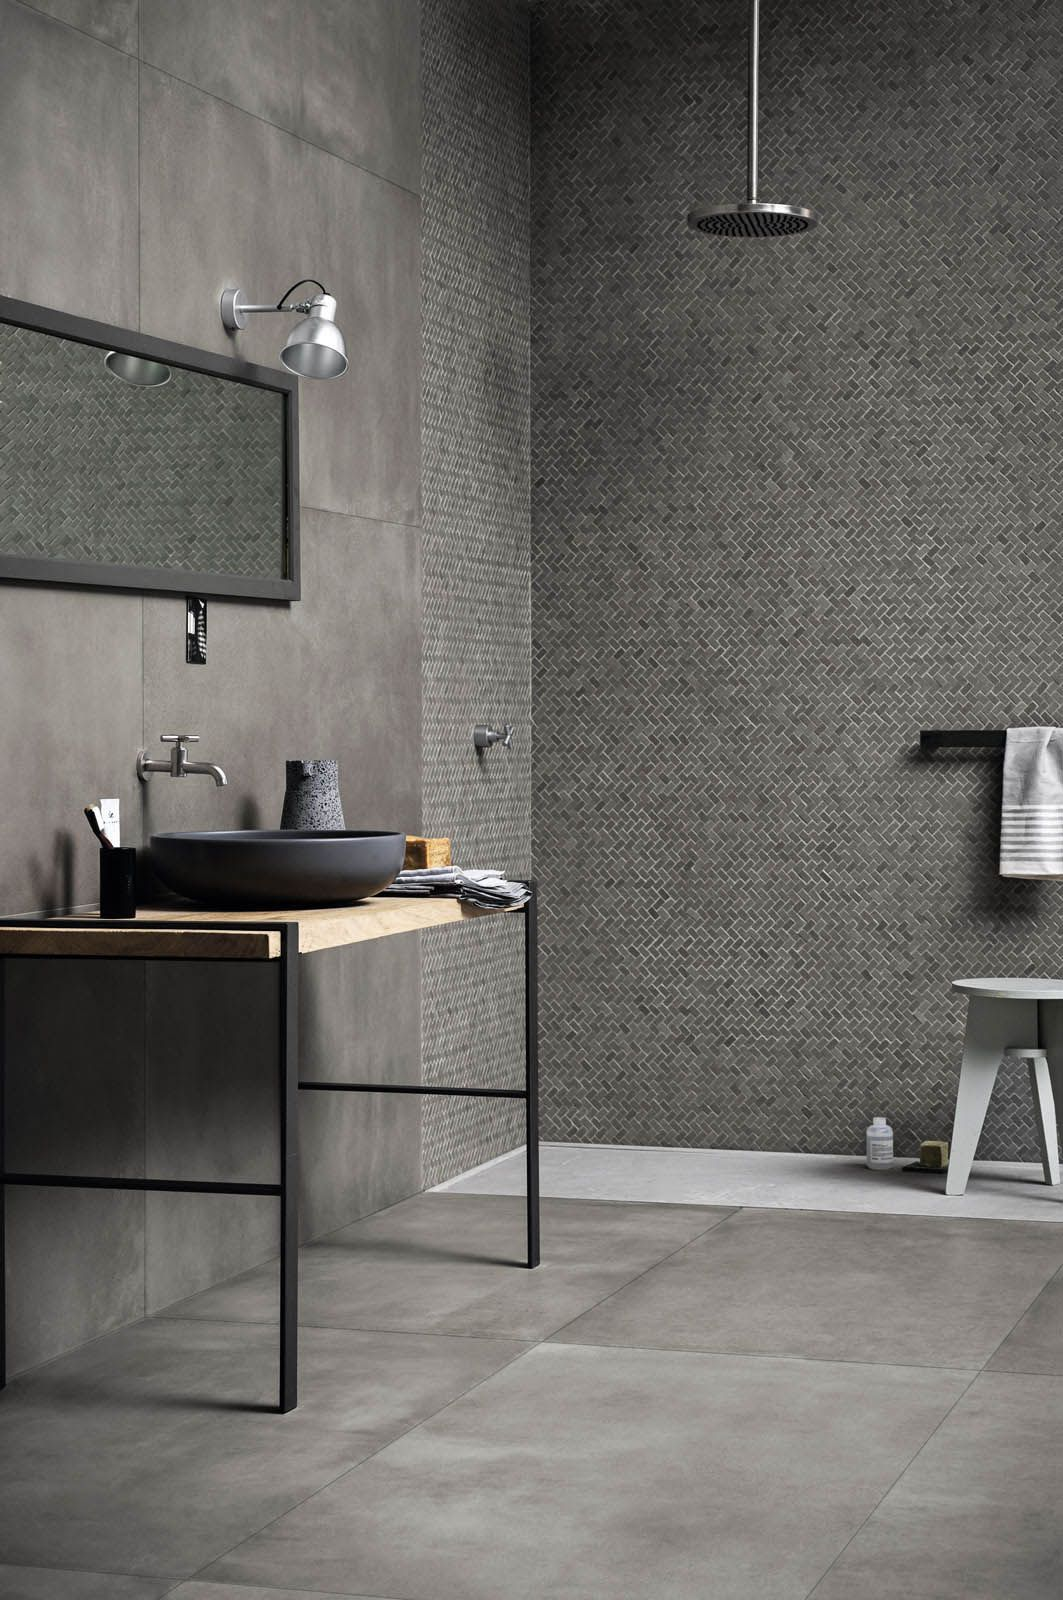 Are You Looking For Designer, Modern Or Classic Bathroom Tiles? View The  Marazzi Collections: Porcelain Stoneware Flooring And Coverings For Your  Home. Part 73